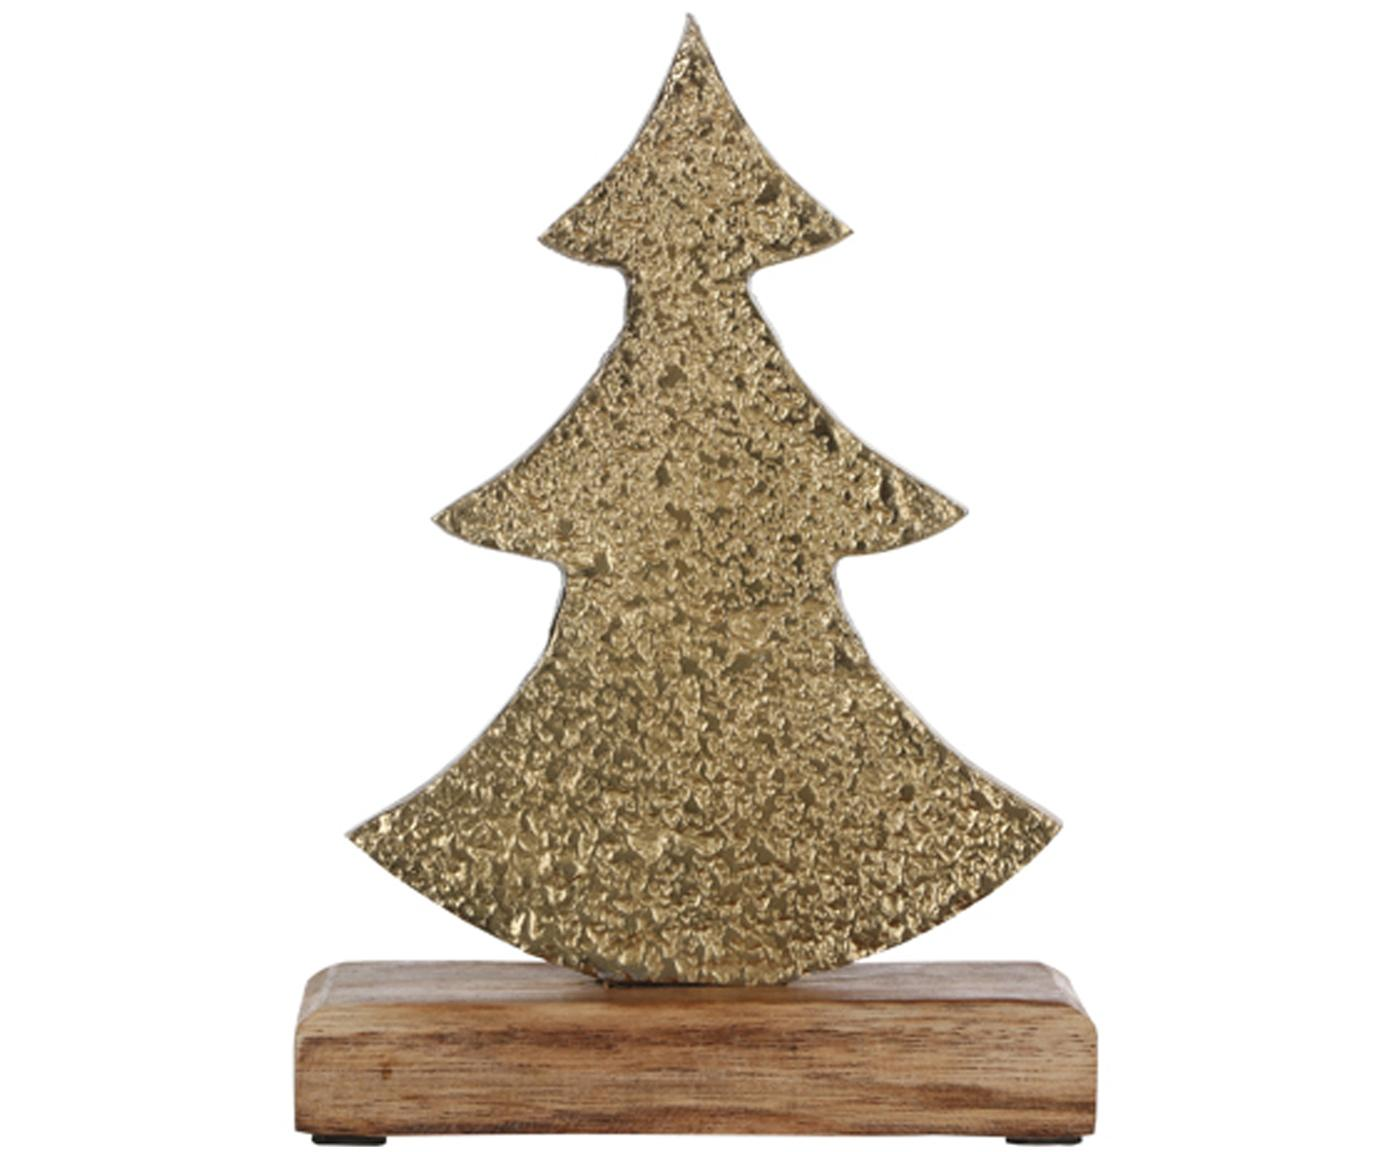 Deko-Objekt Christmas Tree, Sockel: Holz, Messingfarben, 13 x 21 cm